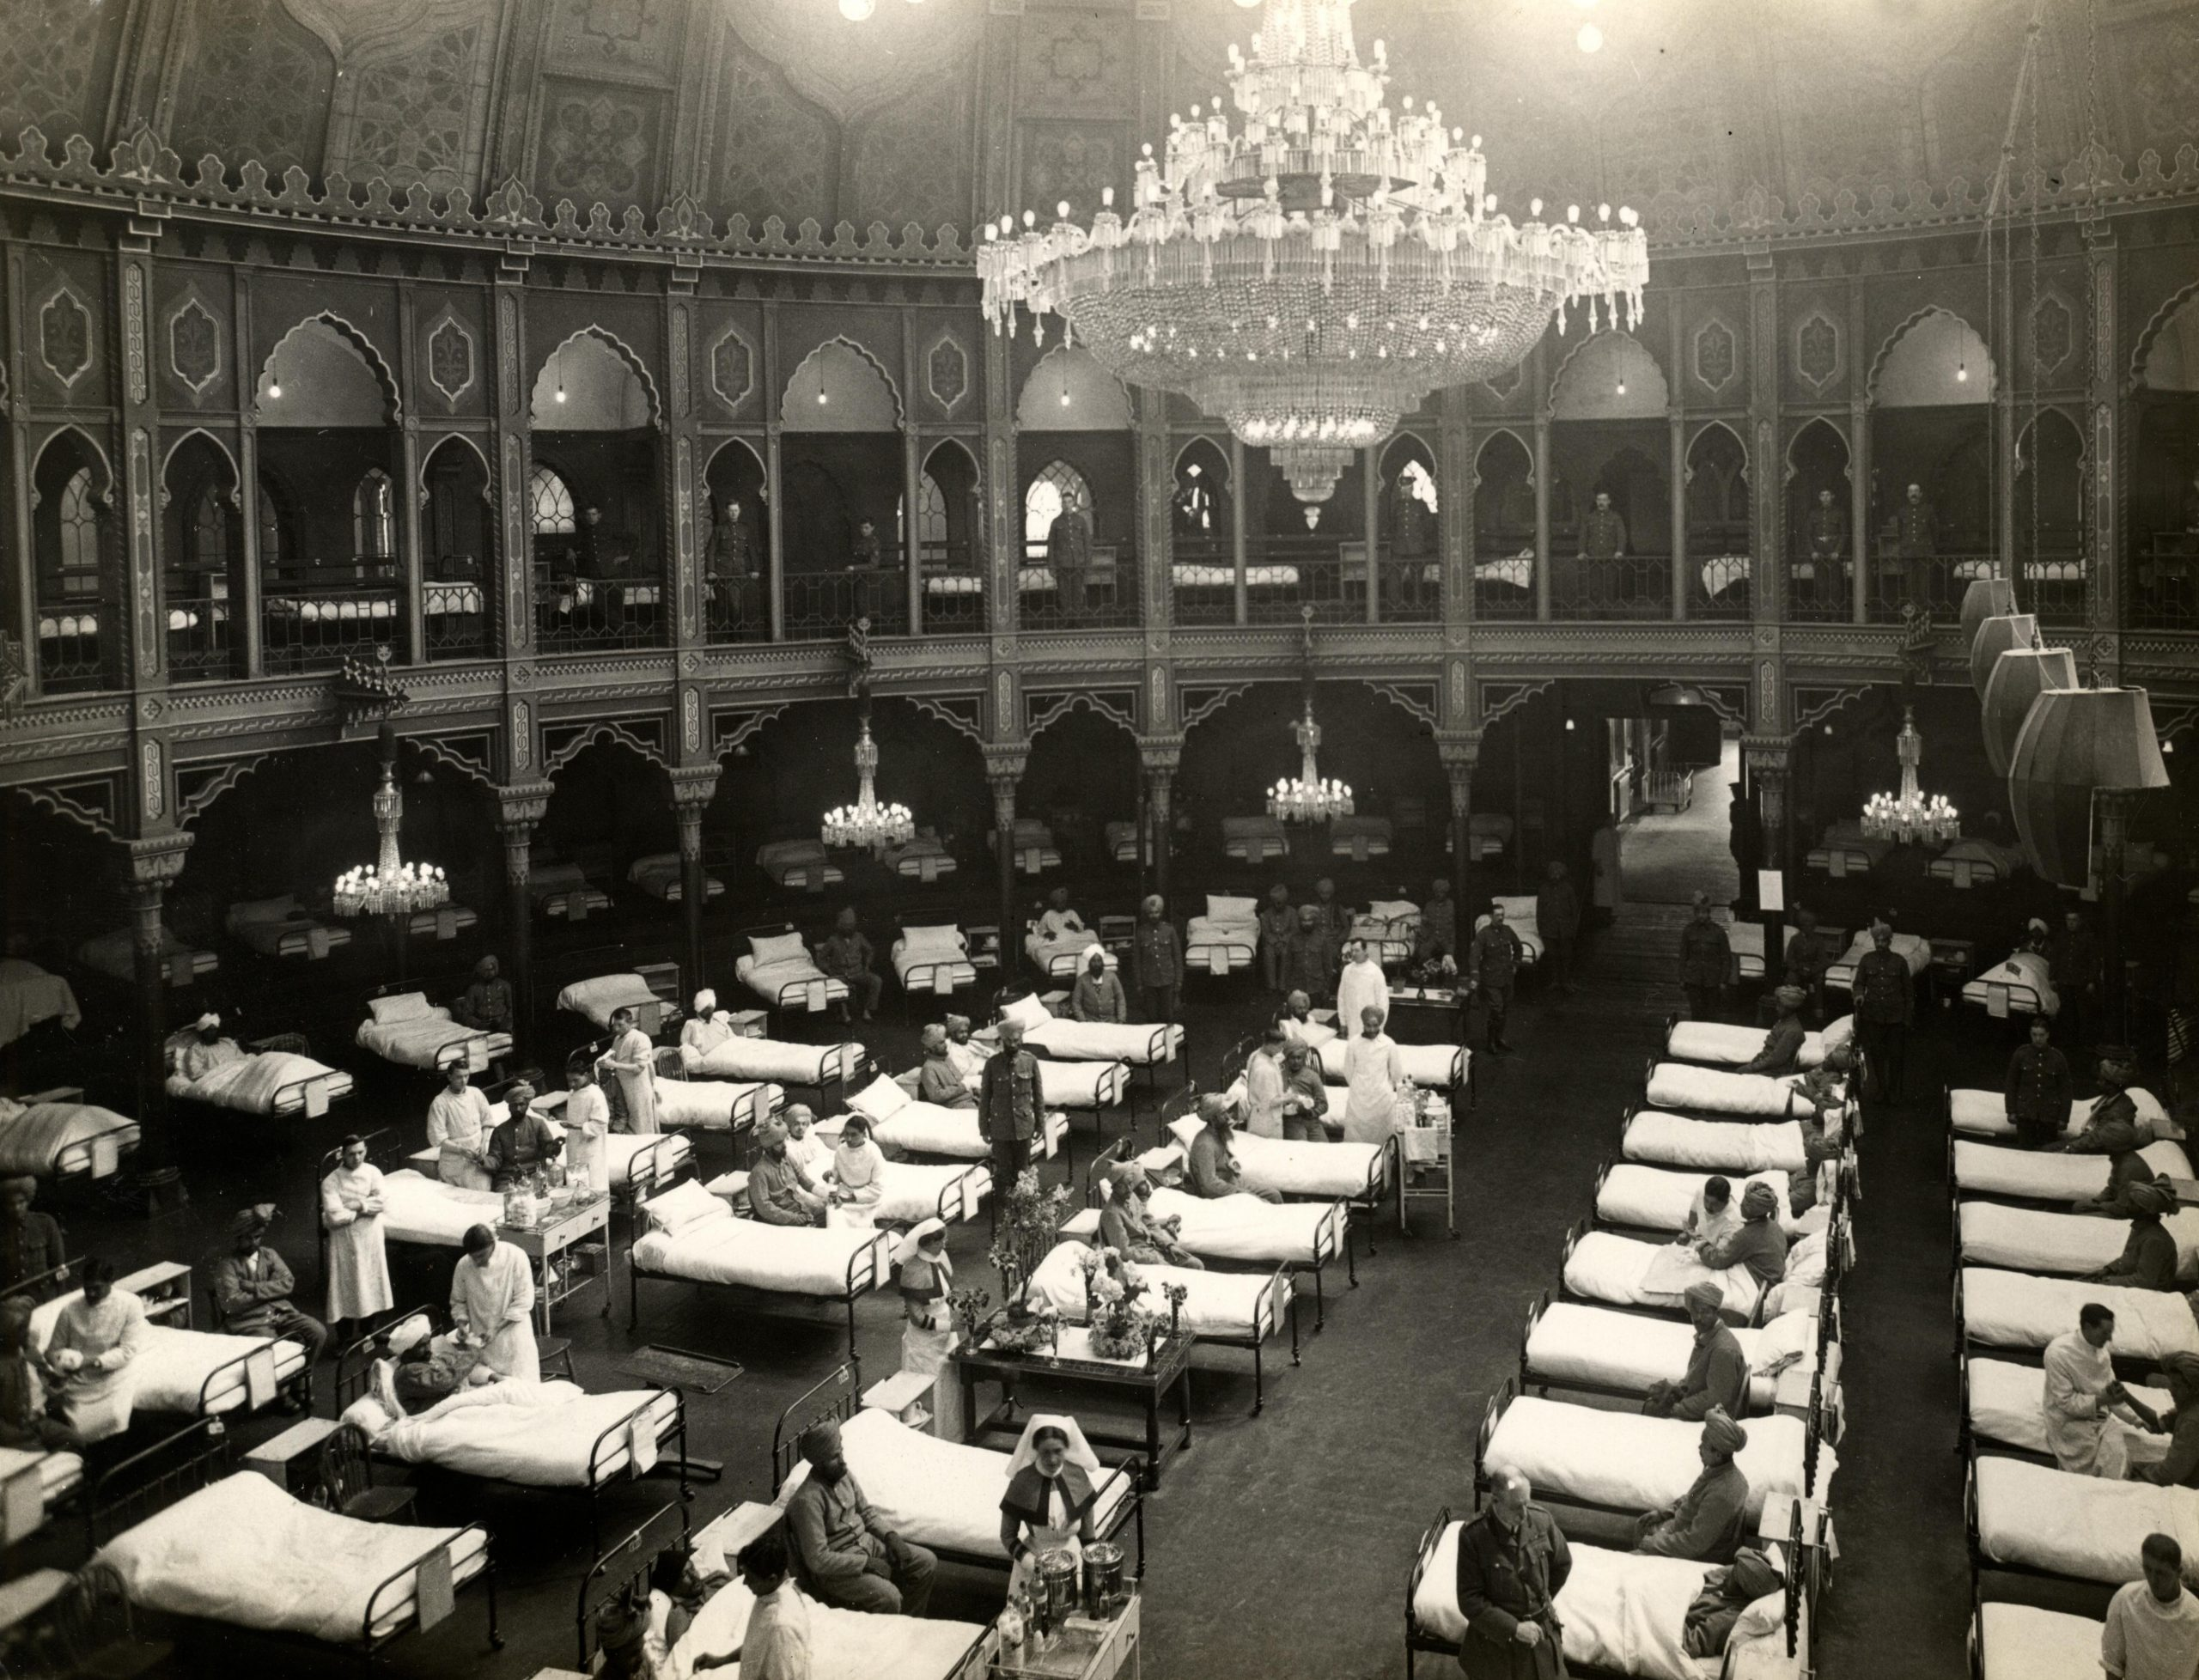 The dome hospital in Brighton fitted for use by soldiers during WW1